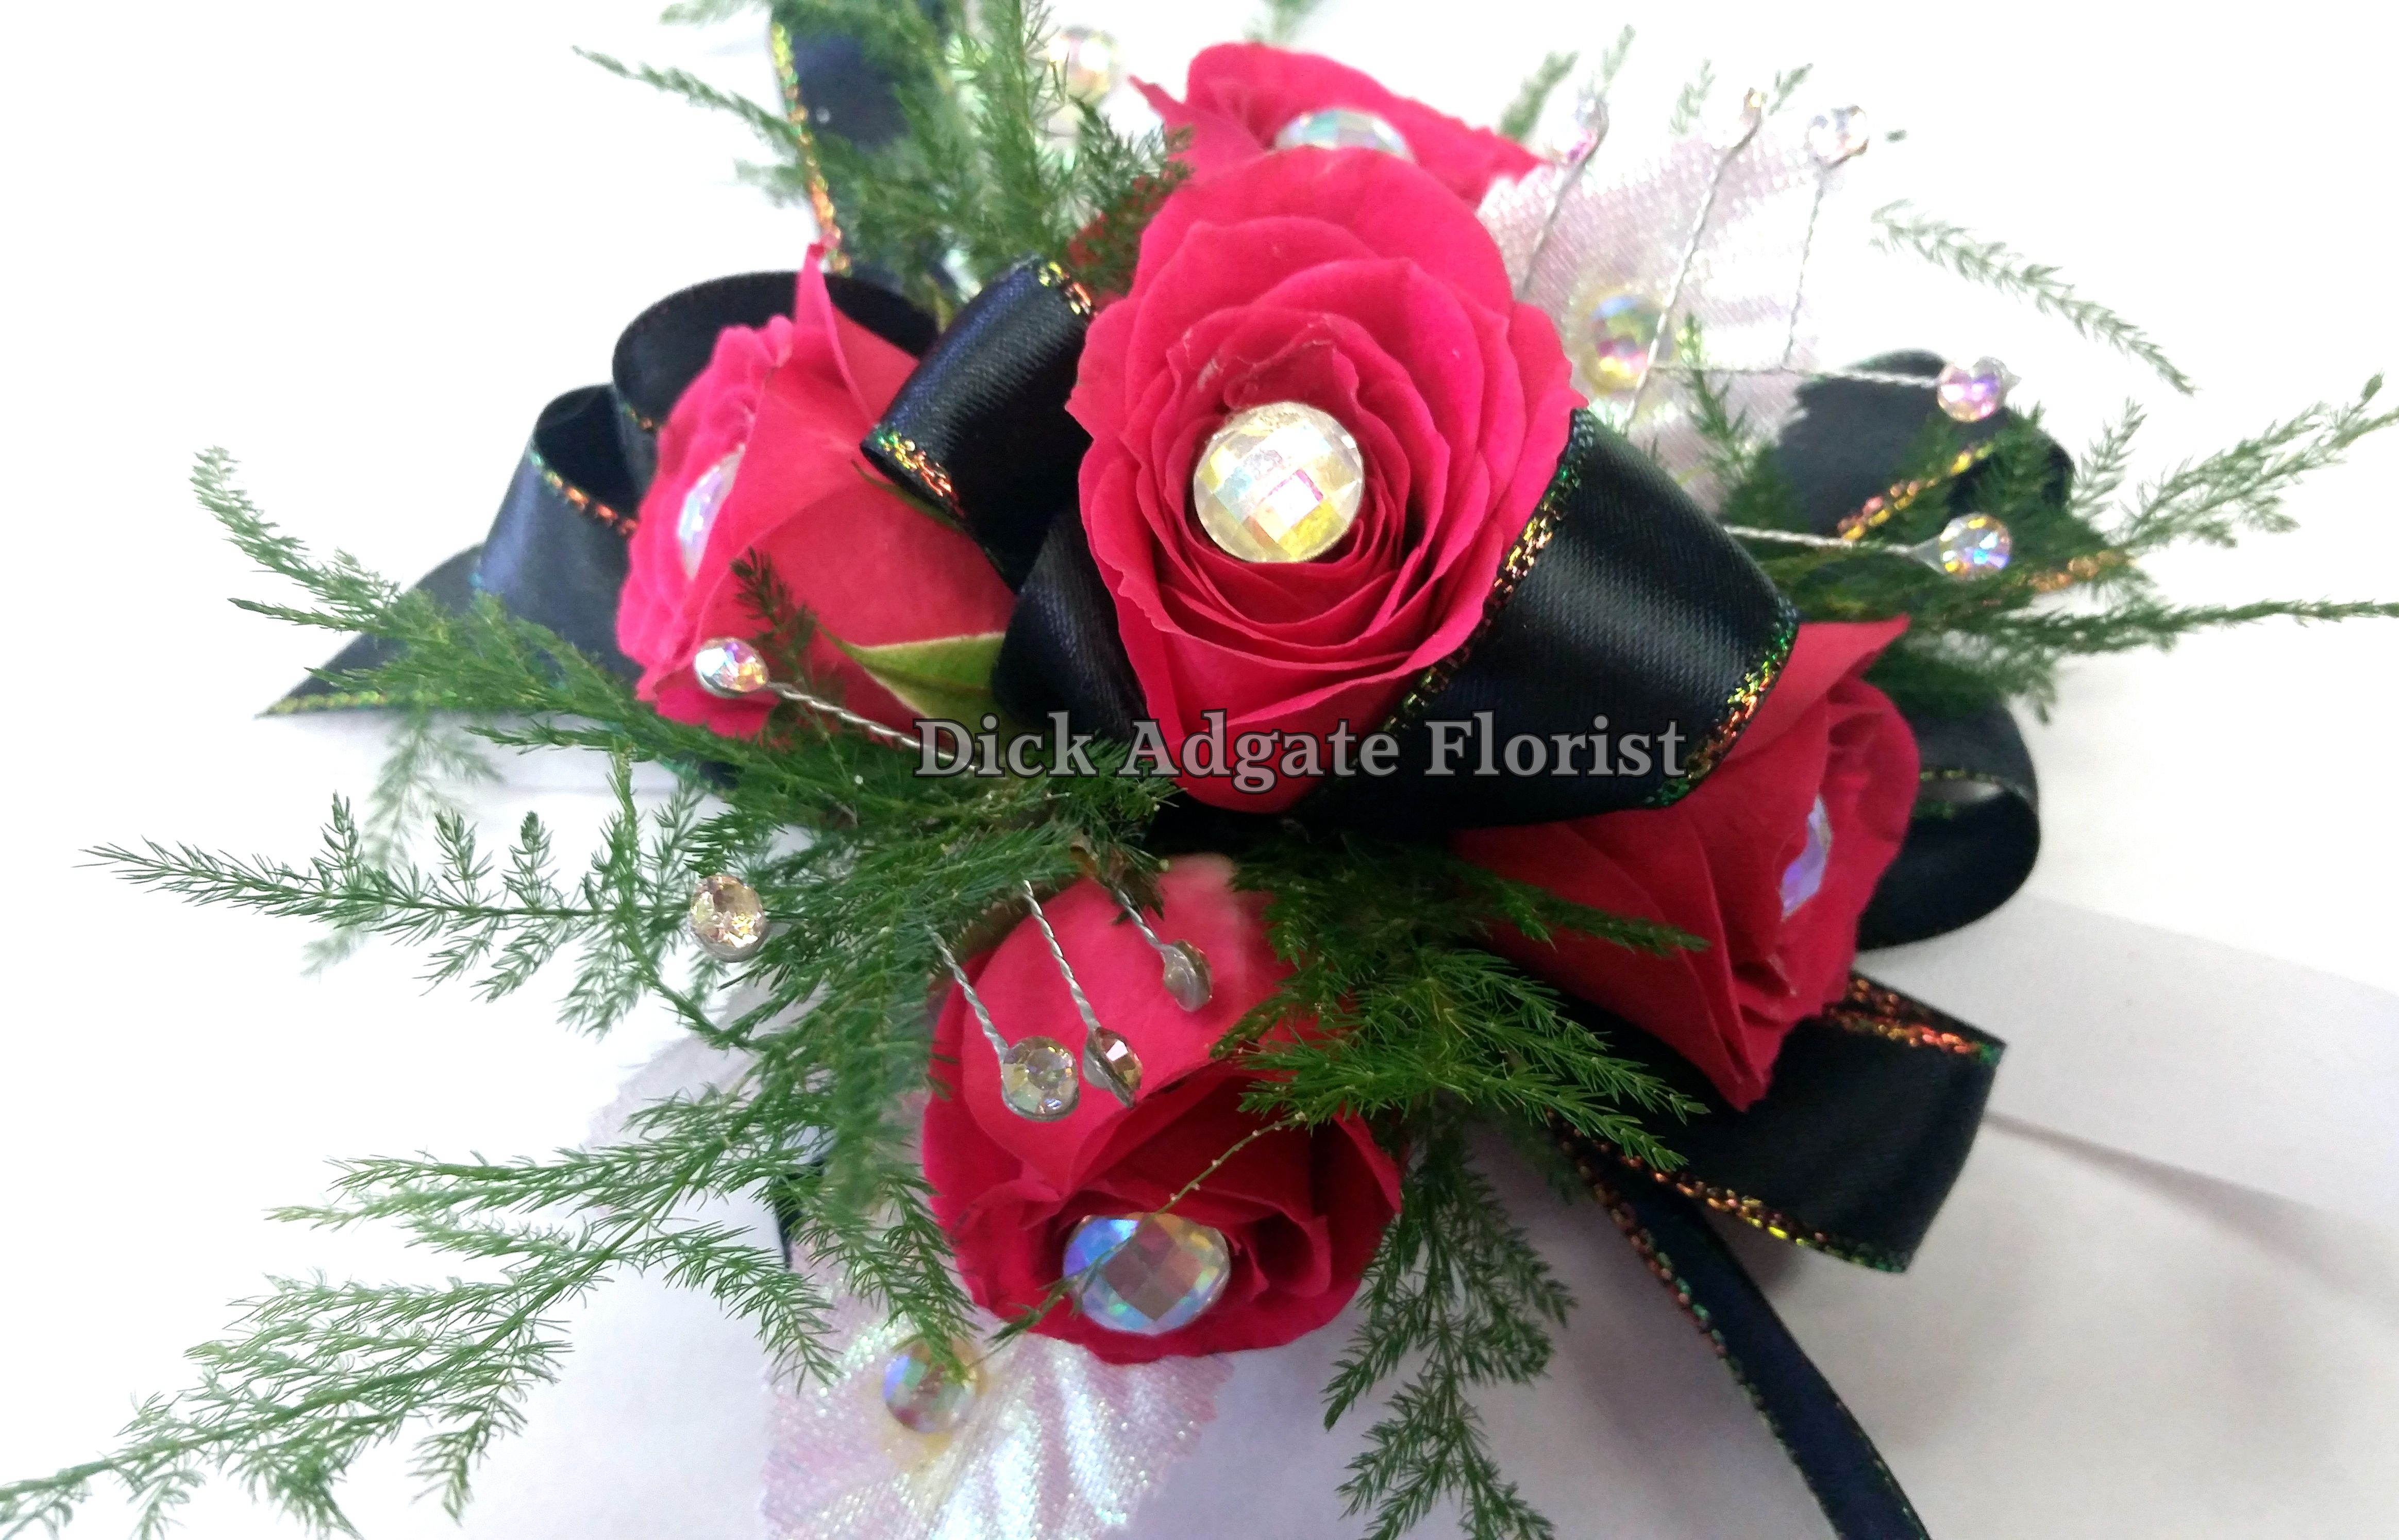 Hot pink spray roses with an iridescent gem in each, plumosa filler and a black ribbon lined with iridescent. Prom / homecoming flowers on a wrist corsage. Dick Adgate Florist original.